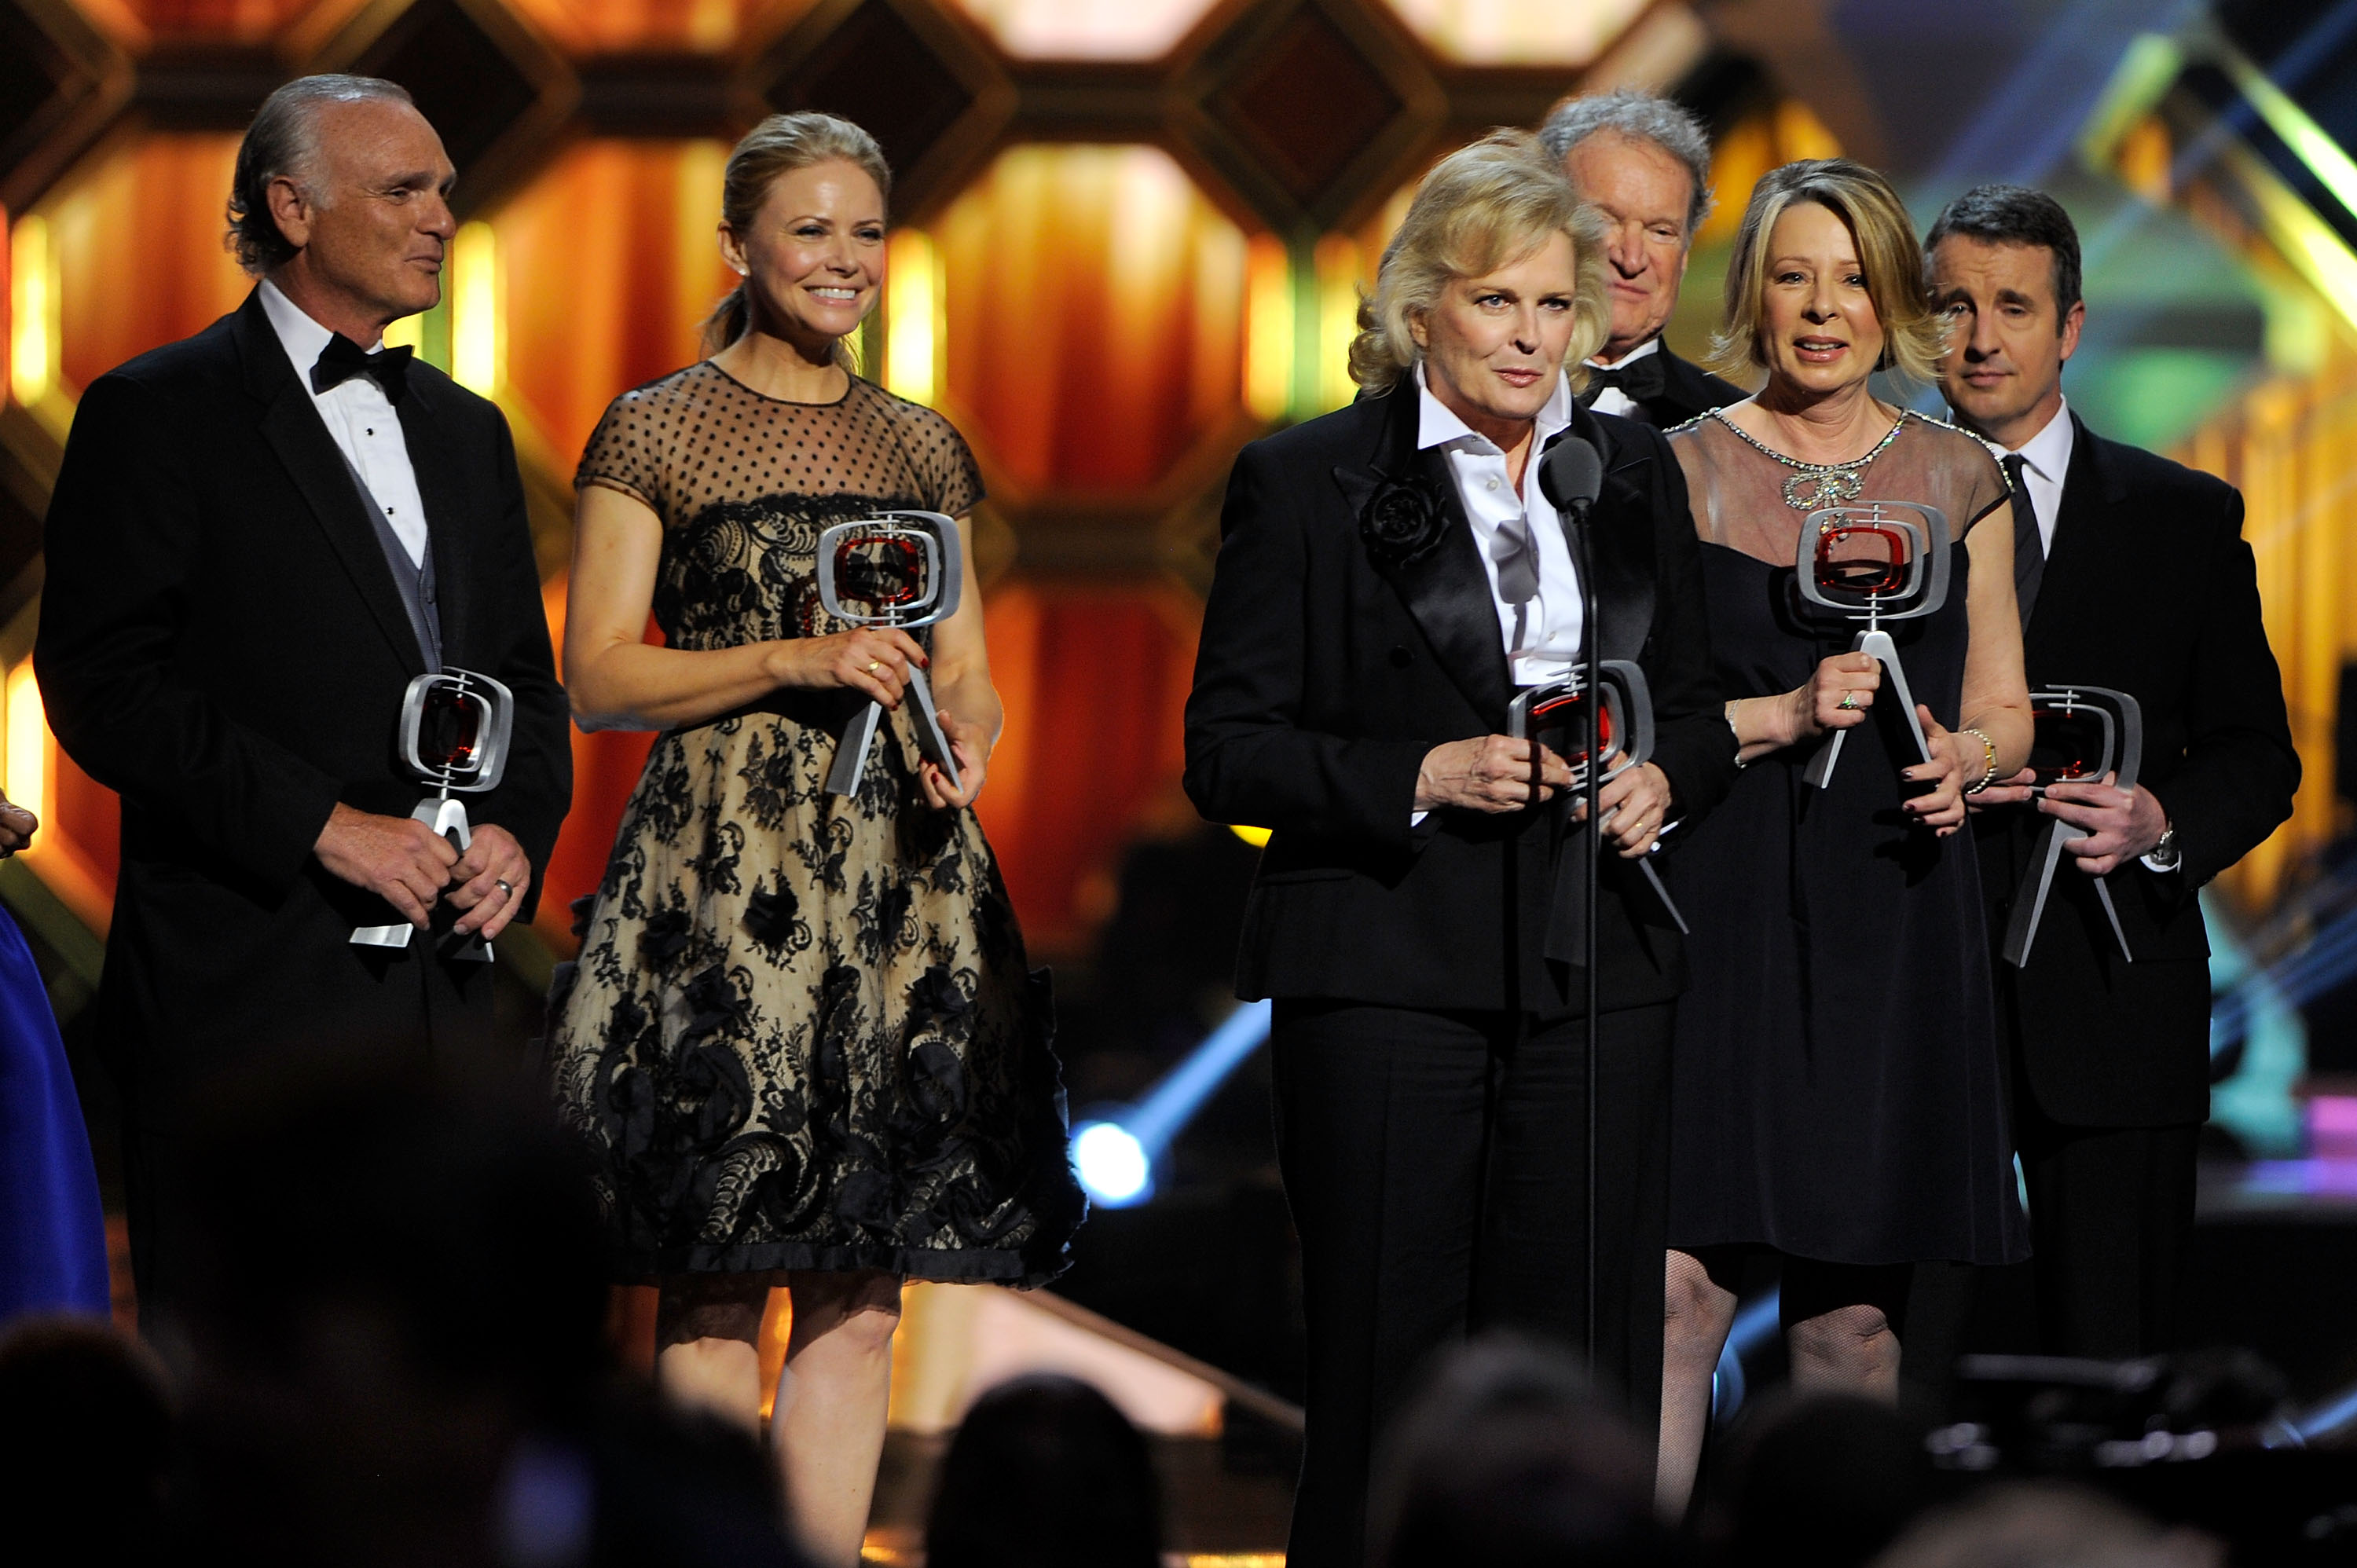 NEW YORK, NY - APRIL 14: (L-R) Actors Joe Regalbuto, Faith Ford, Candice Bergen, Charles Kimbrough, 'Murphy Brown' creator/executive producer Diane English and Grant Shaud speak onstage at the 10th Annual TV Land Awards at the Lexington Avenue Armory on April 14, 2012 in New York City. (Photo by Andrew H. Walker/Getty Images)